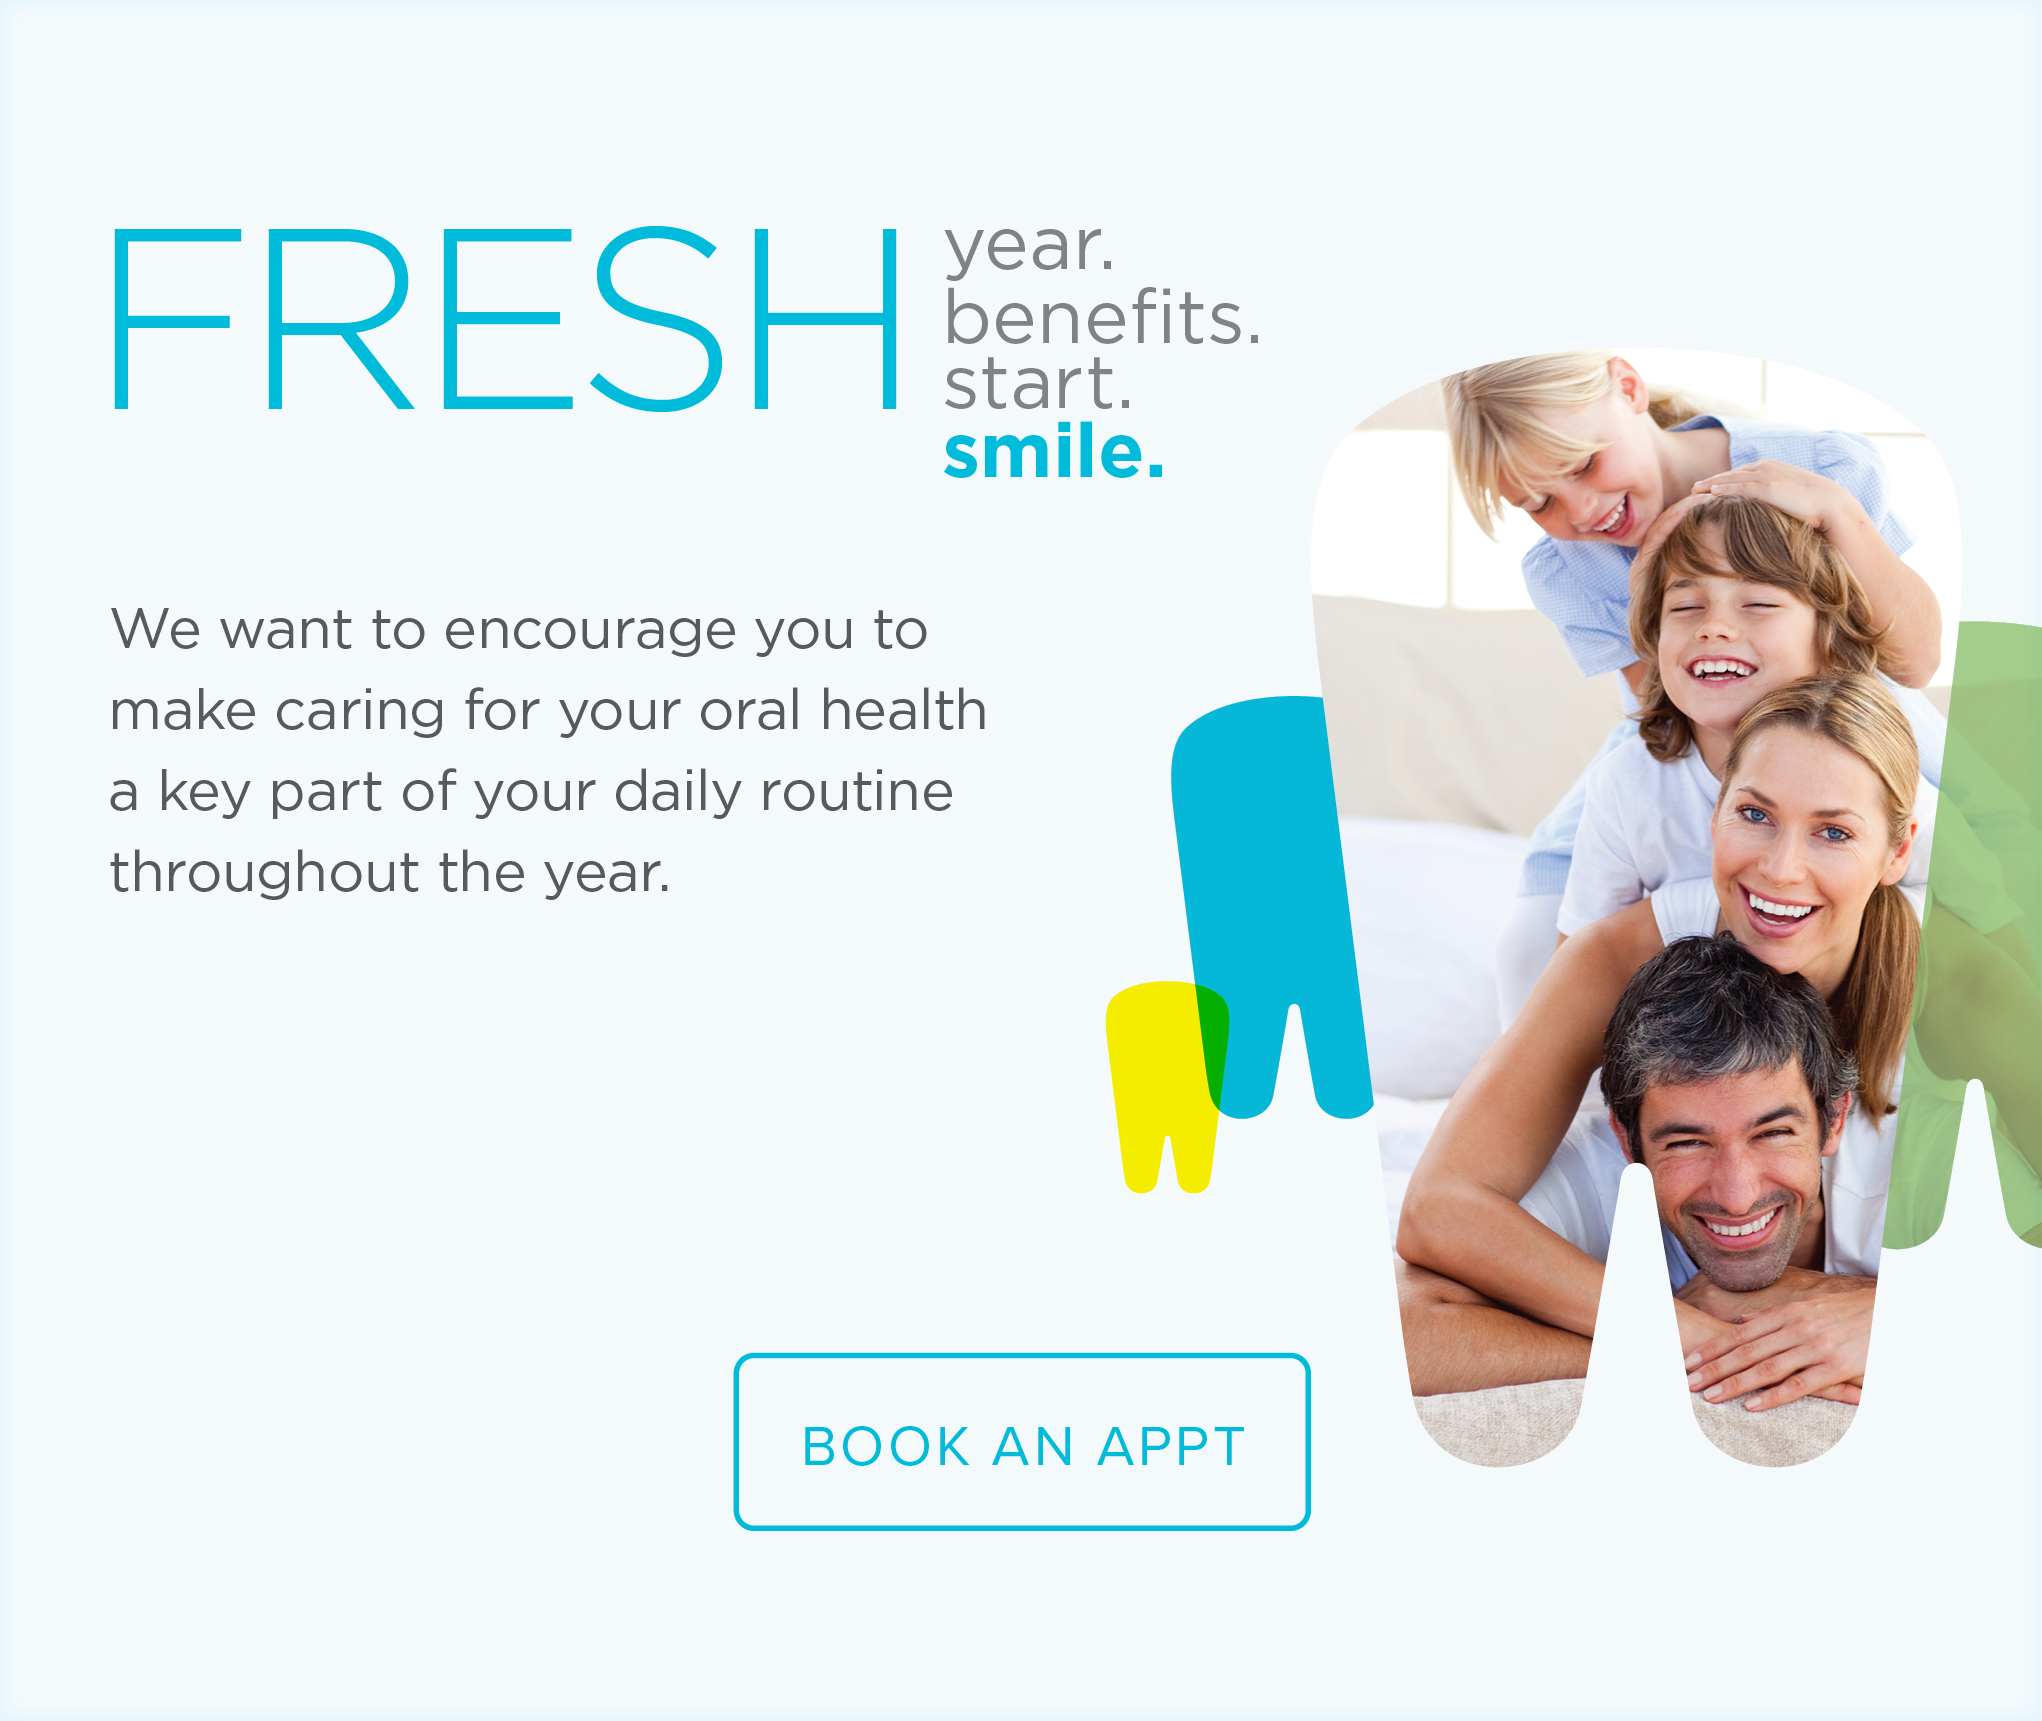 Lone Tree Dentists and Orthodontics - Make the Most of Your Benefits